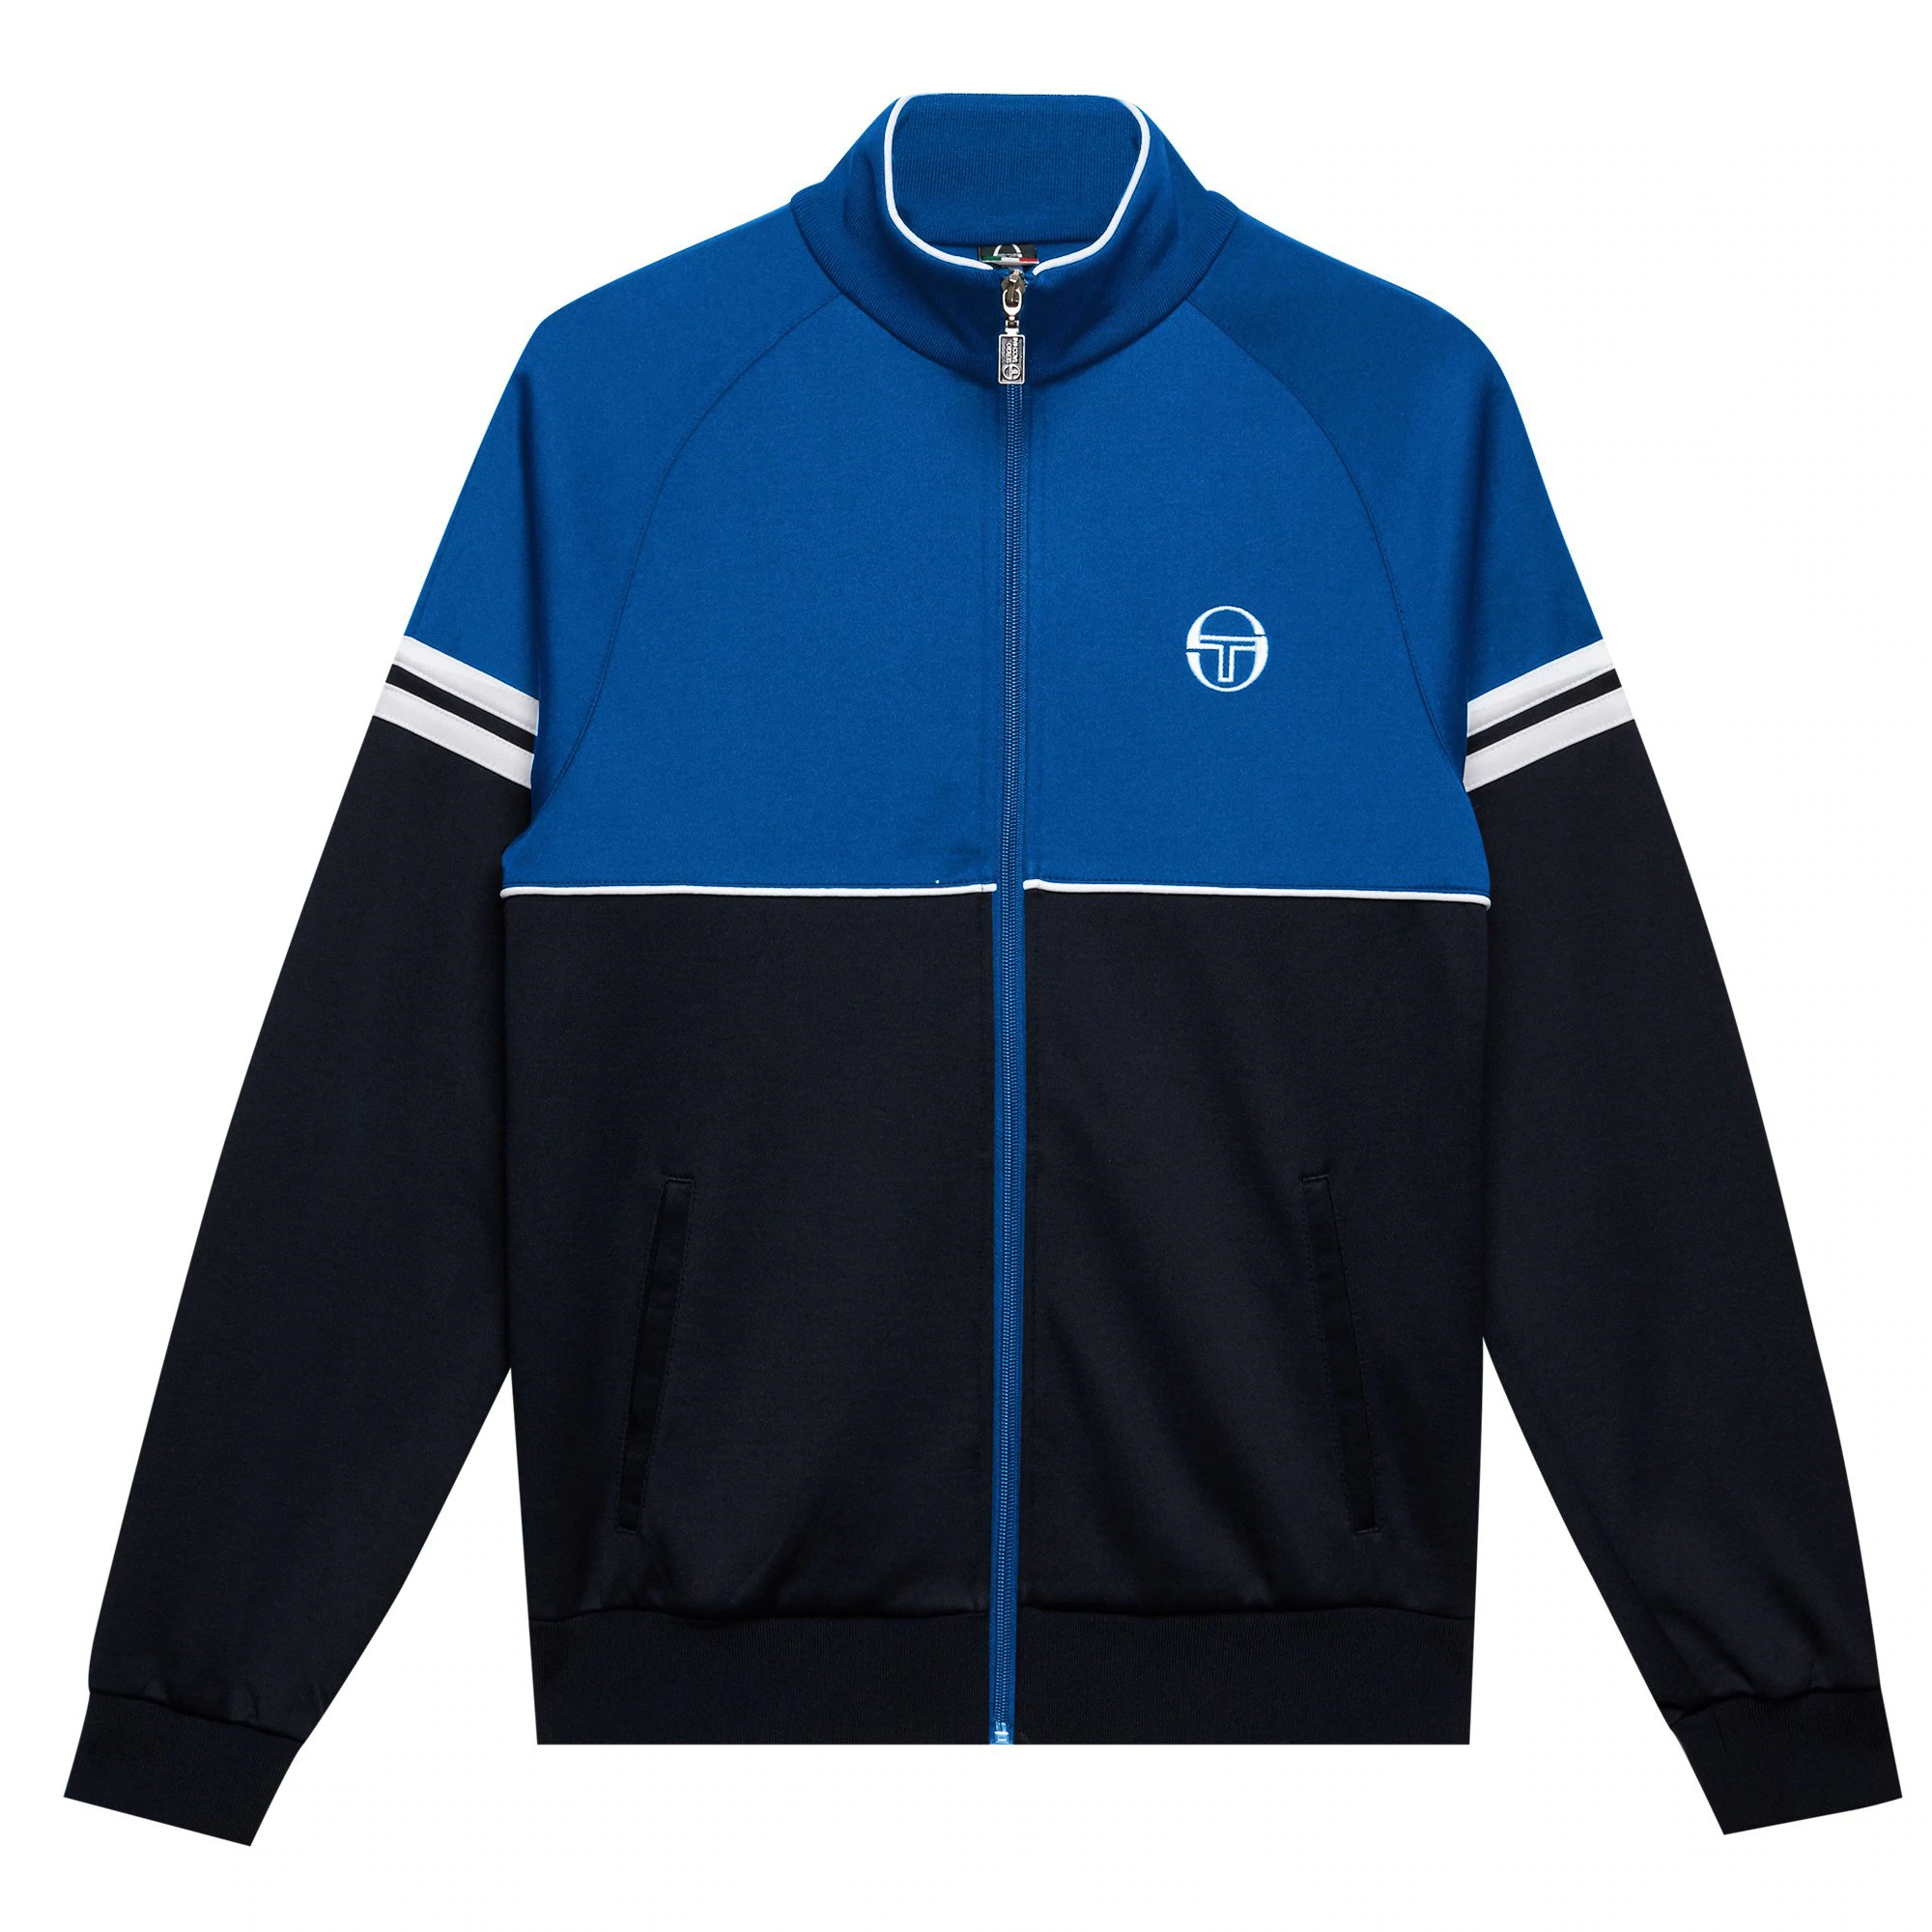 Sergio Tacchini Dallas Track Top in Navy retro tracksuit jacket 80s Orion Star